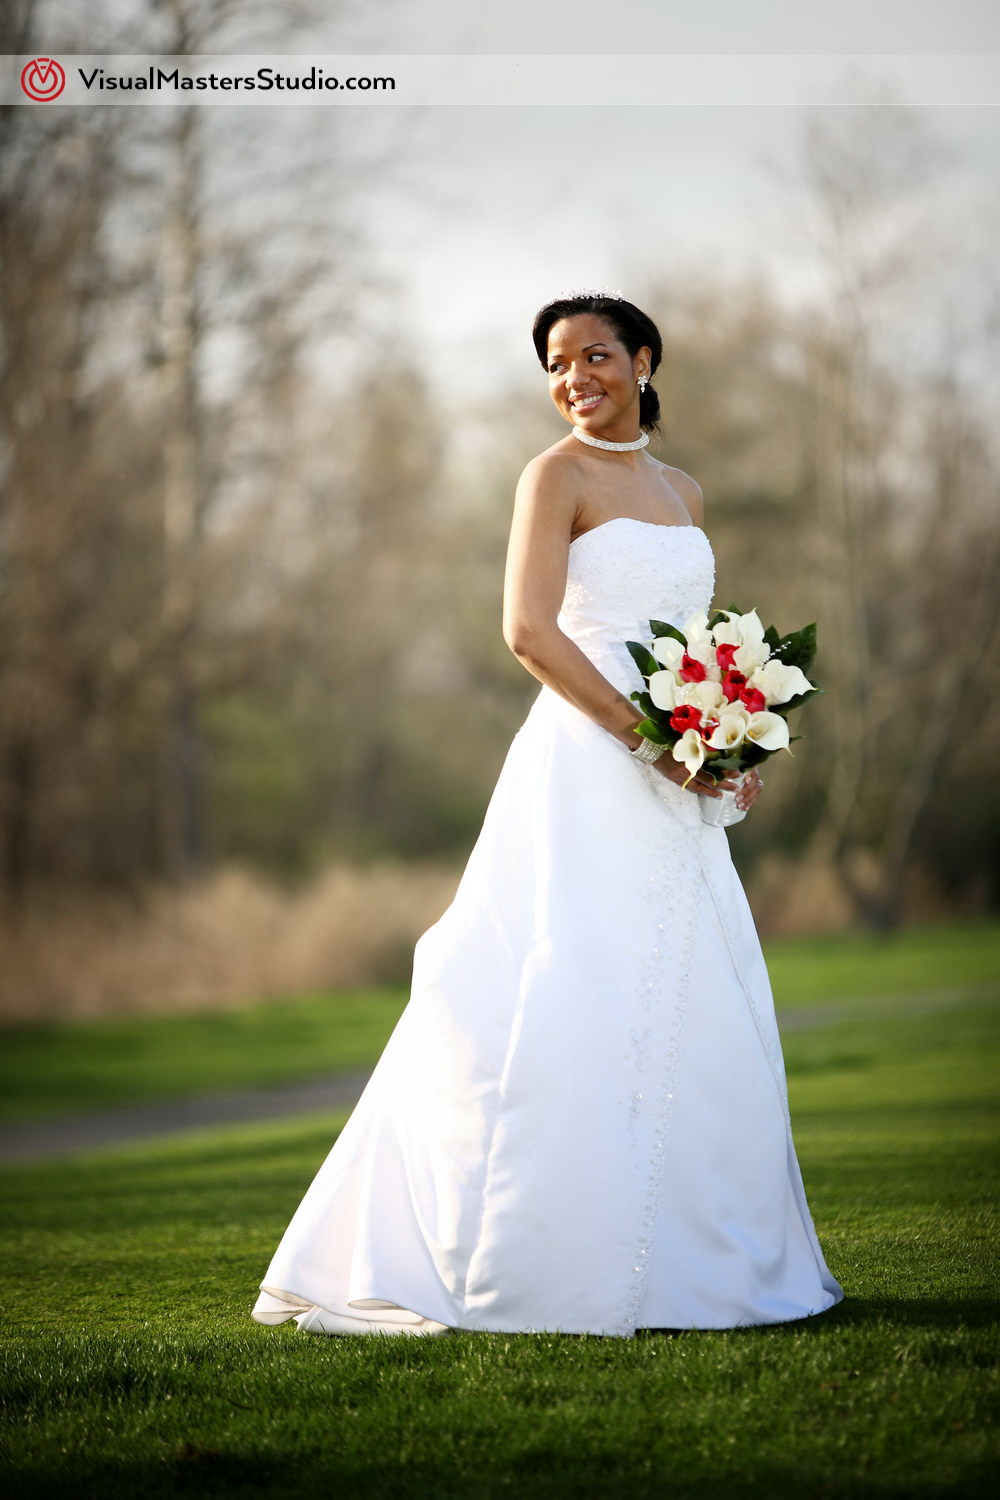 Portrait of the Bride at Pelham Bay & Split Rock Golf Course by VisualMasters